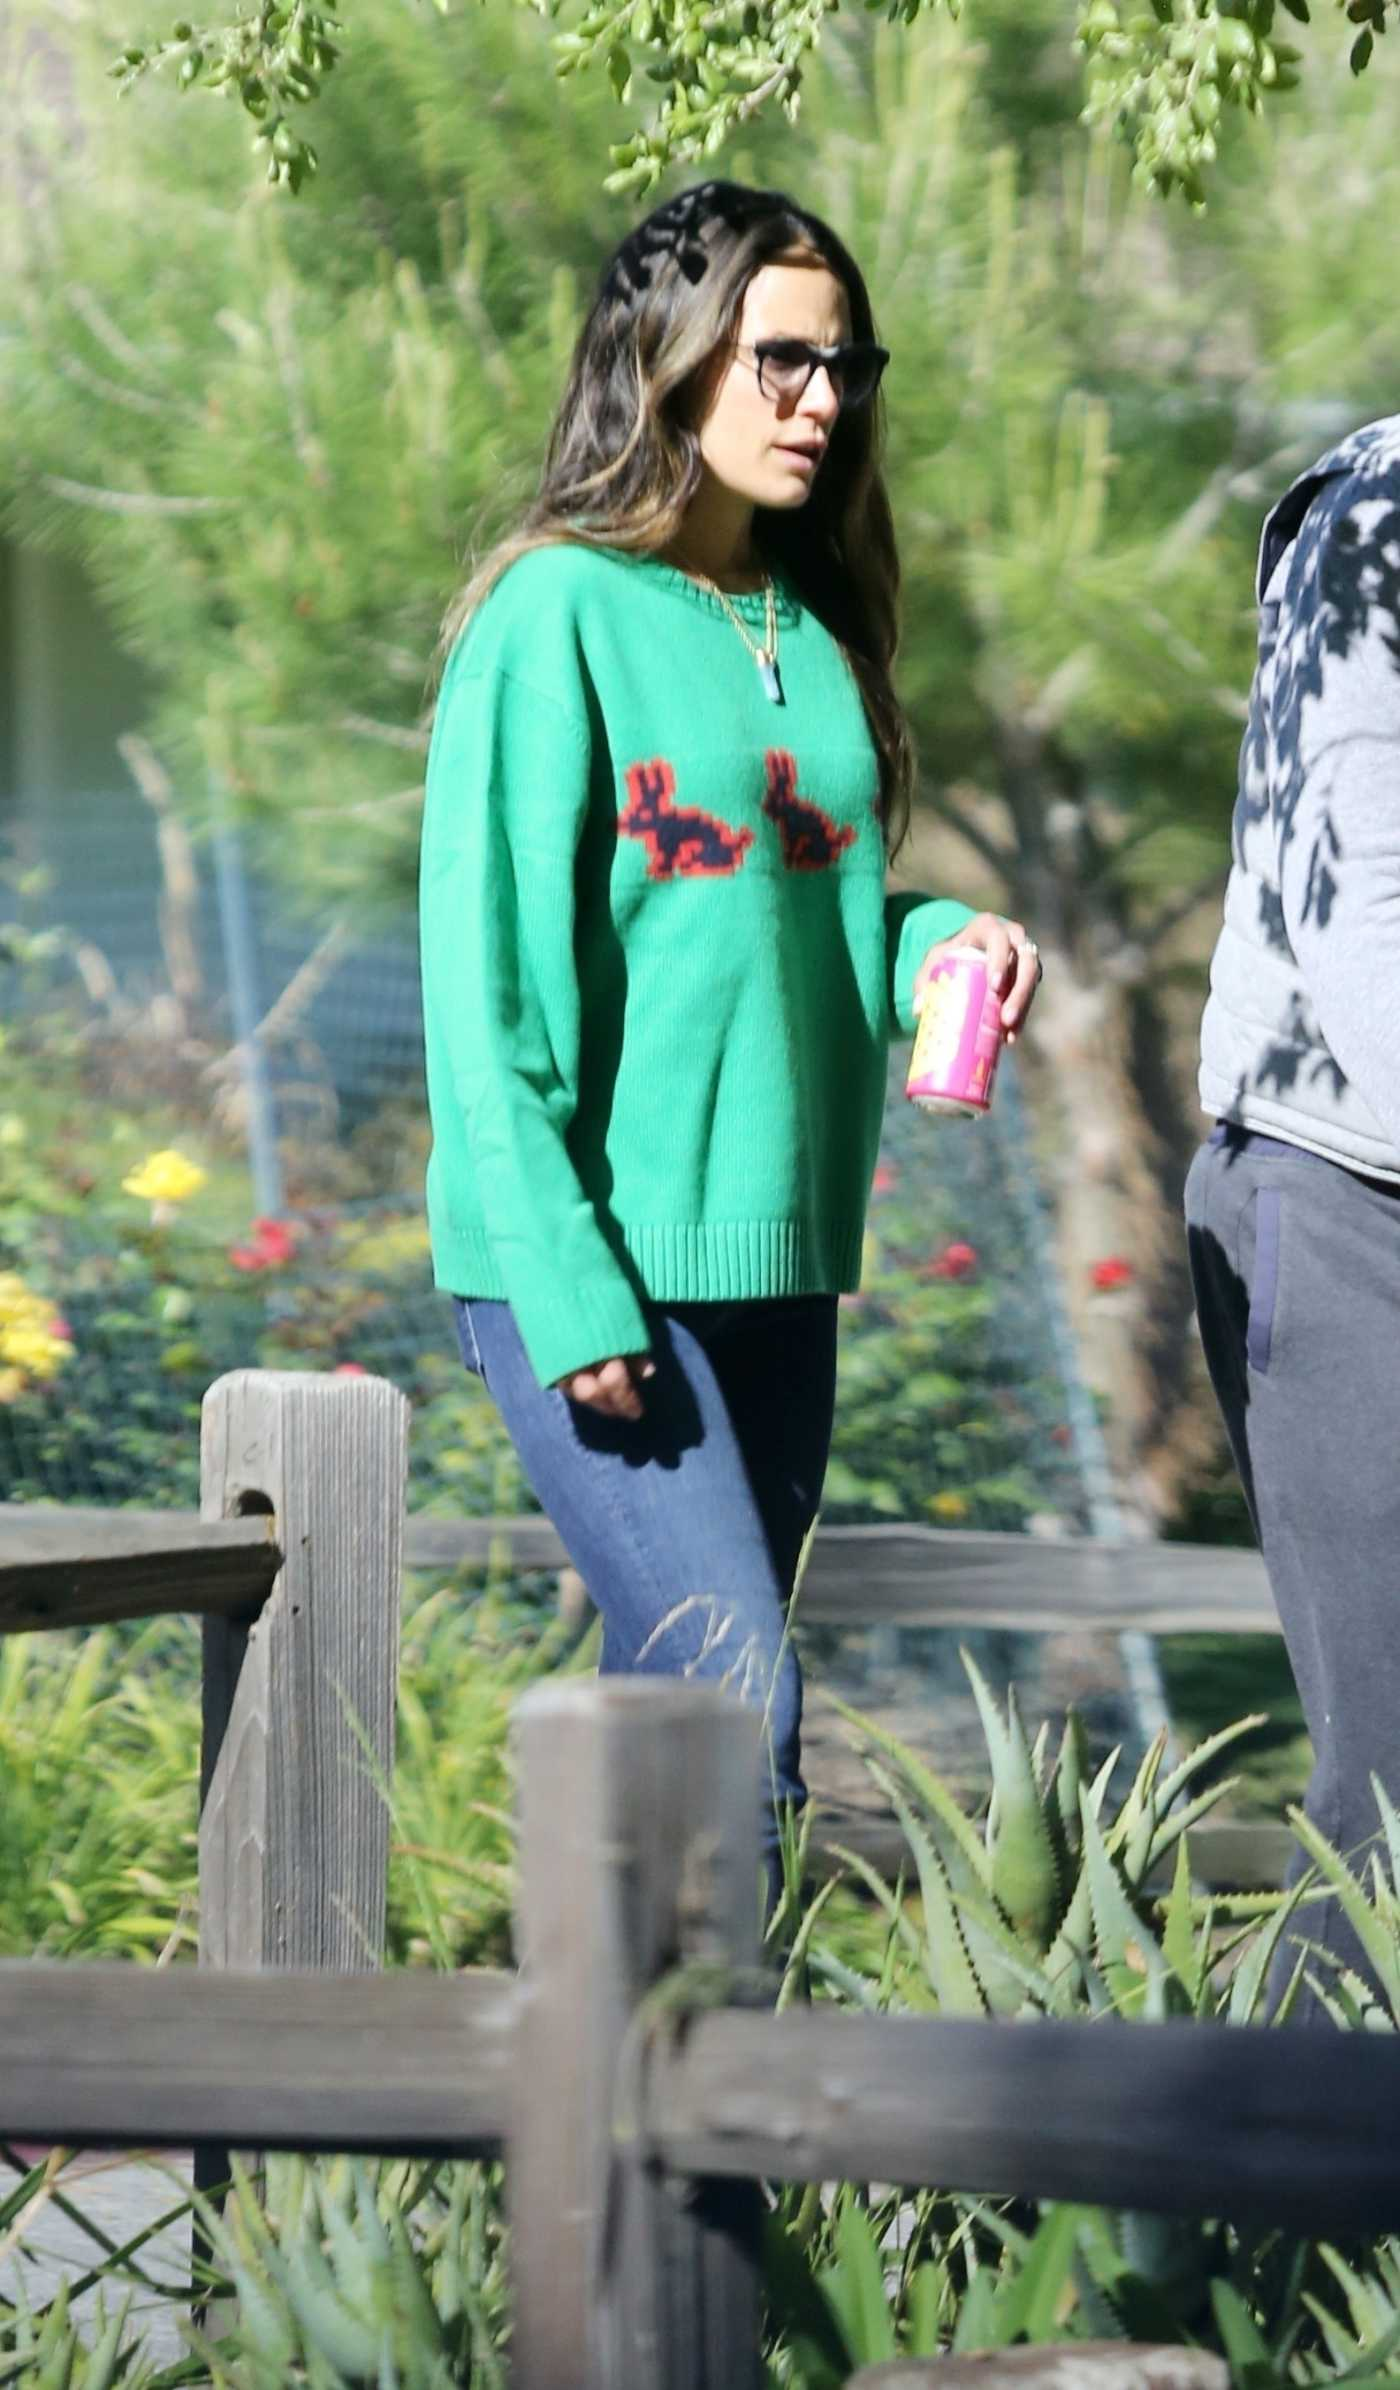 Jordana Brewster in a Green Sweater Was Seen Out in Brentwood 04/19/2020